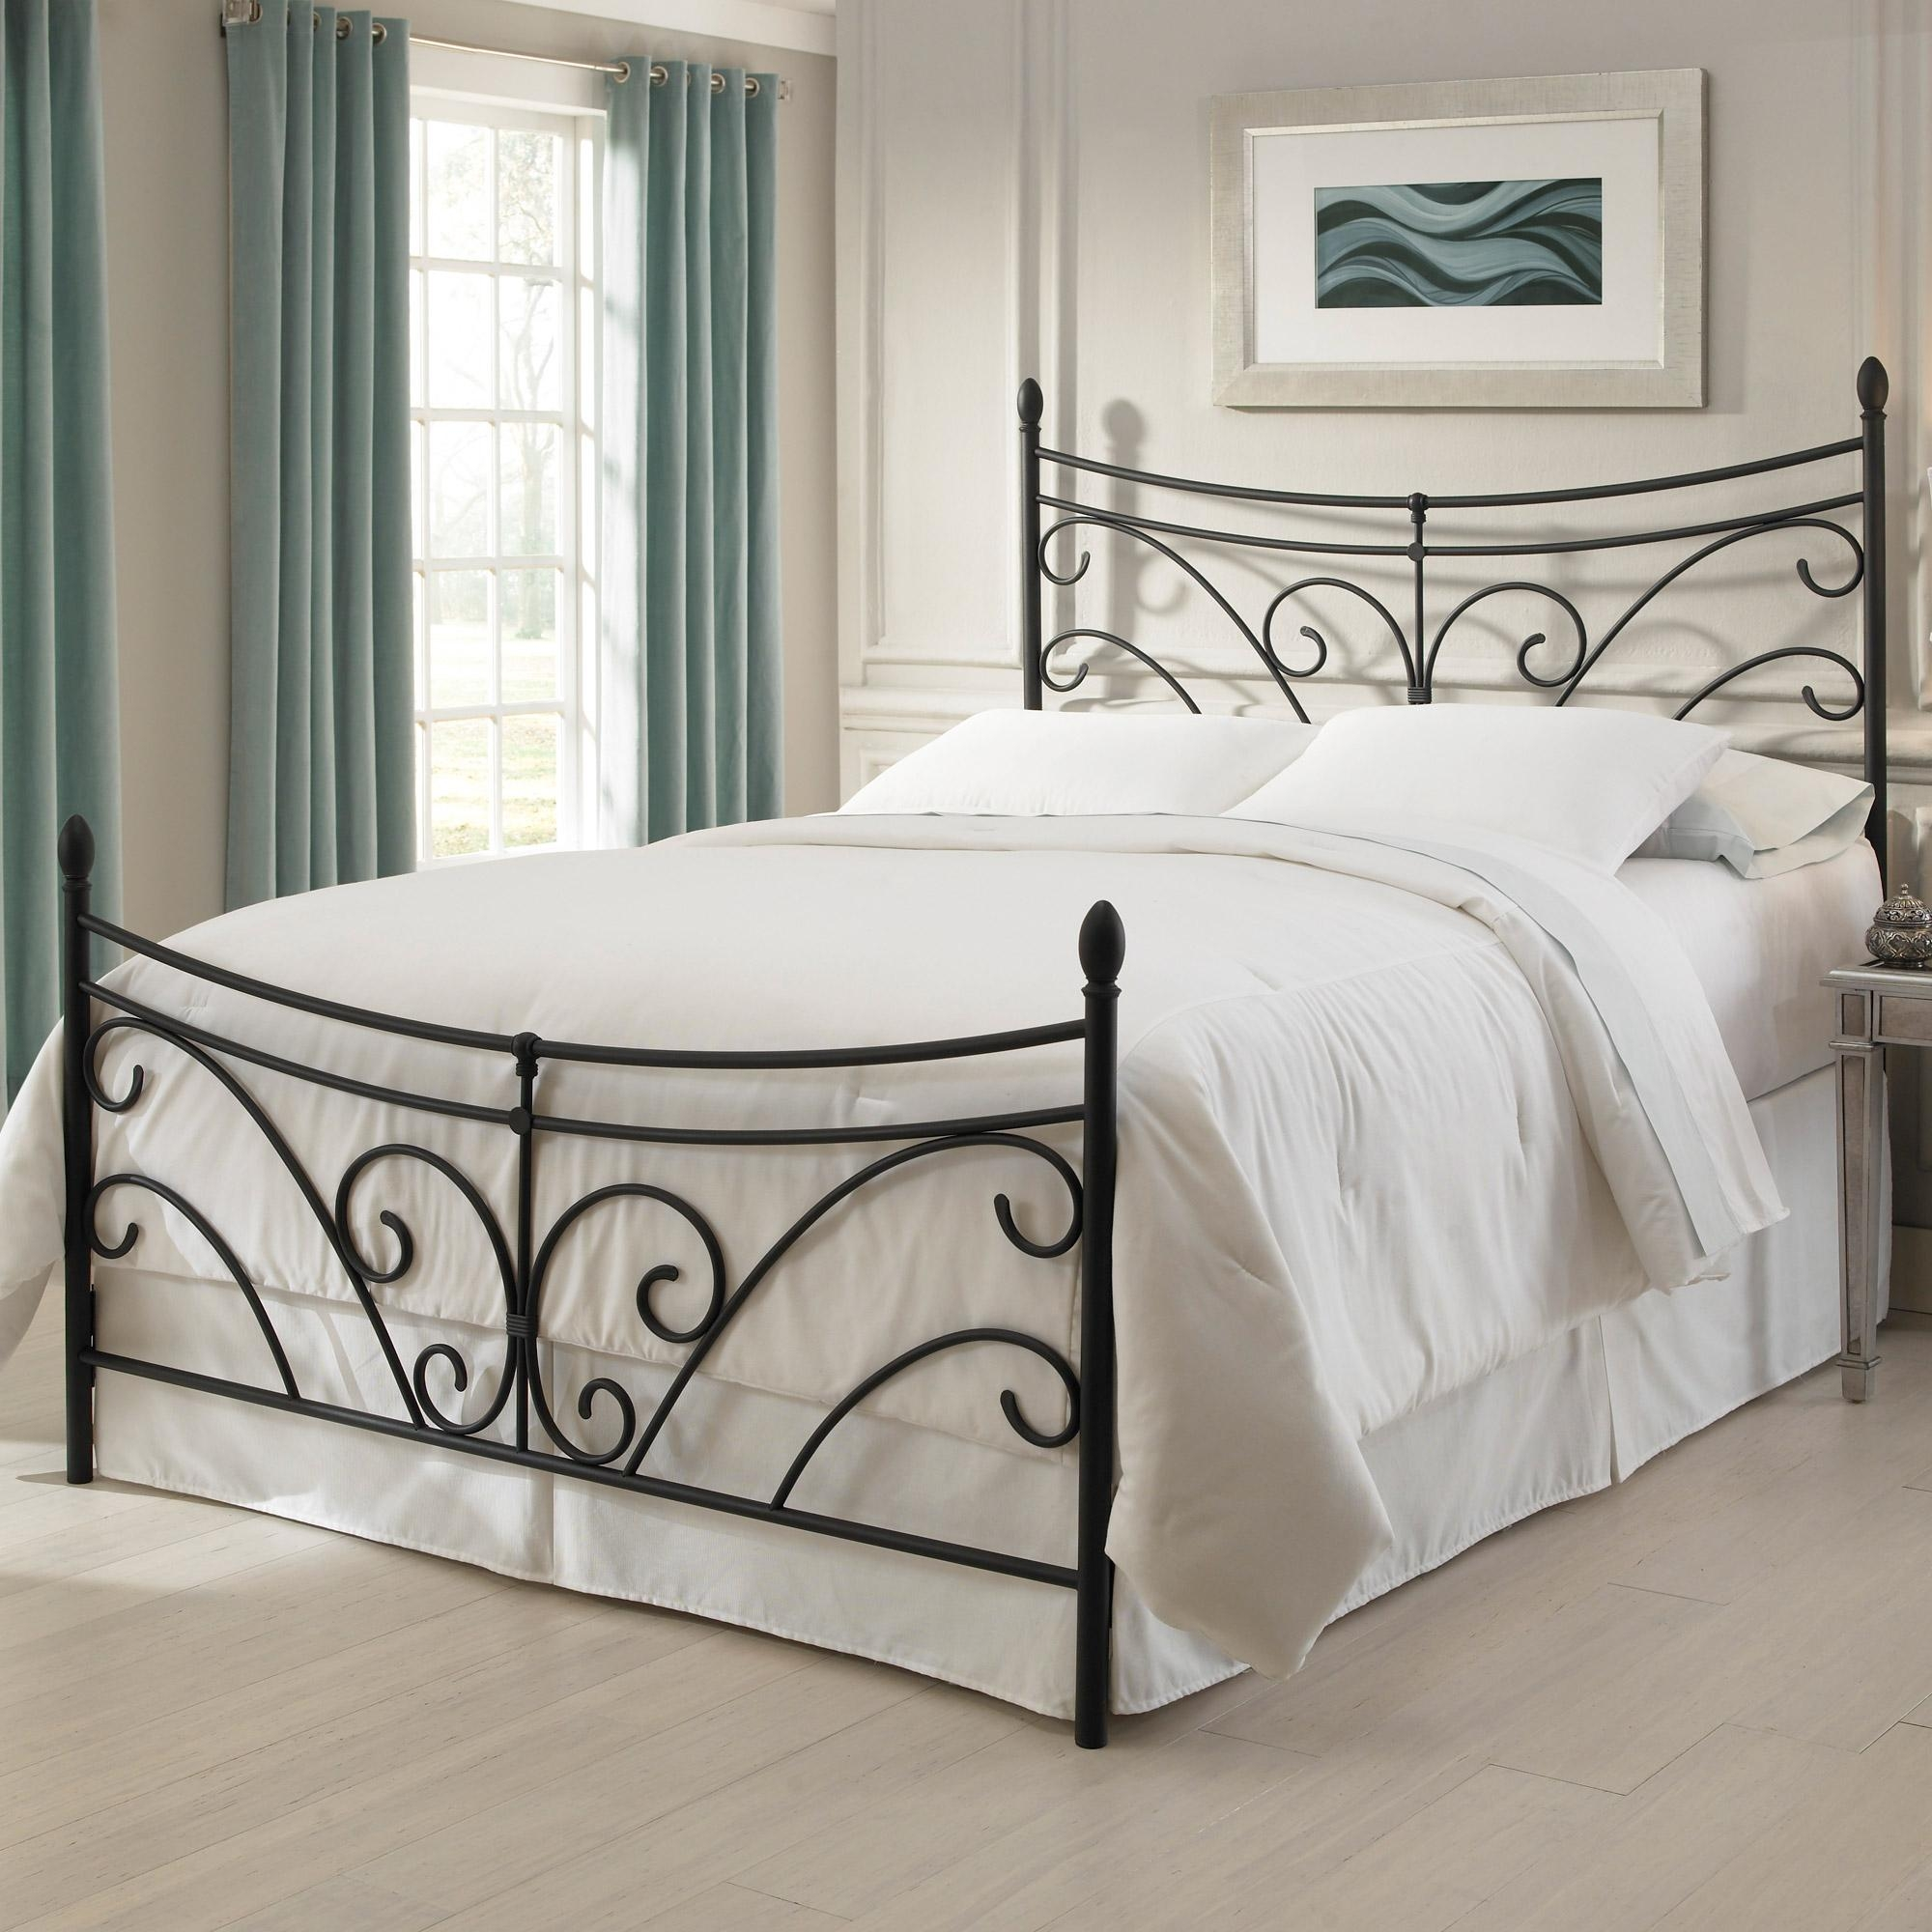 Bedroom : Circle Metal Wall Art Iron Wall Decor Round Metal Wall Inside Large Wrought Iron Wall Art (View 17 of 20)